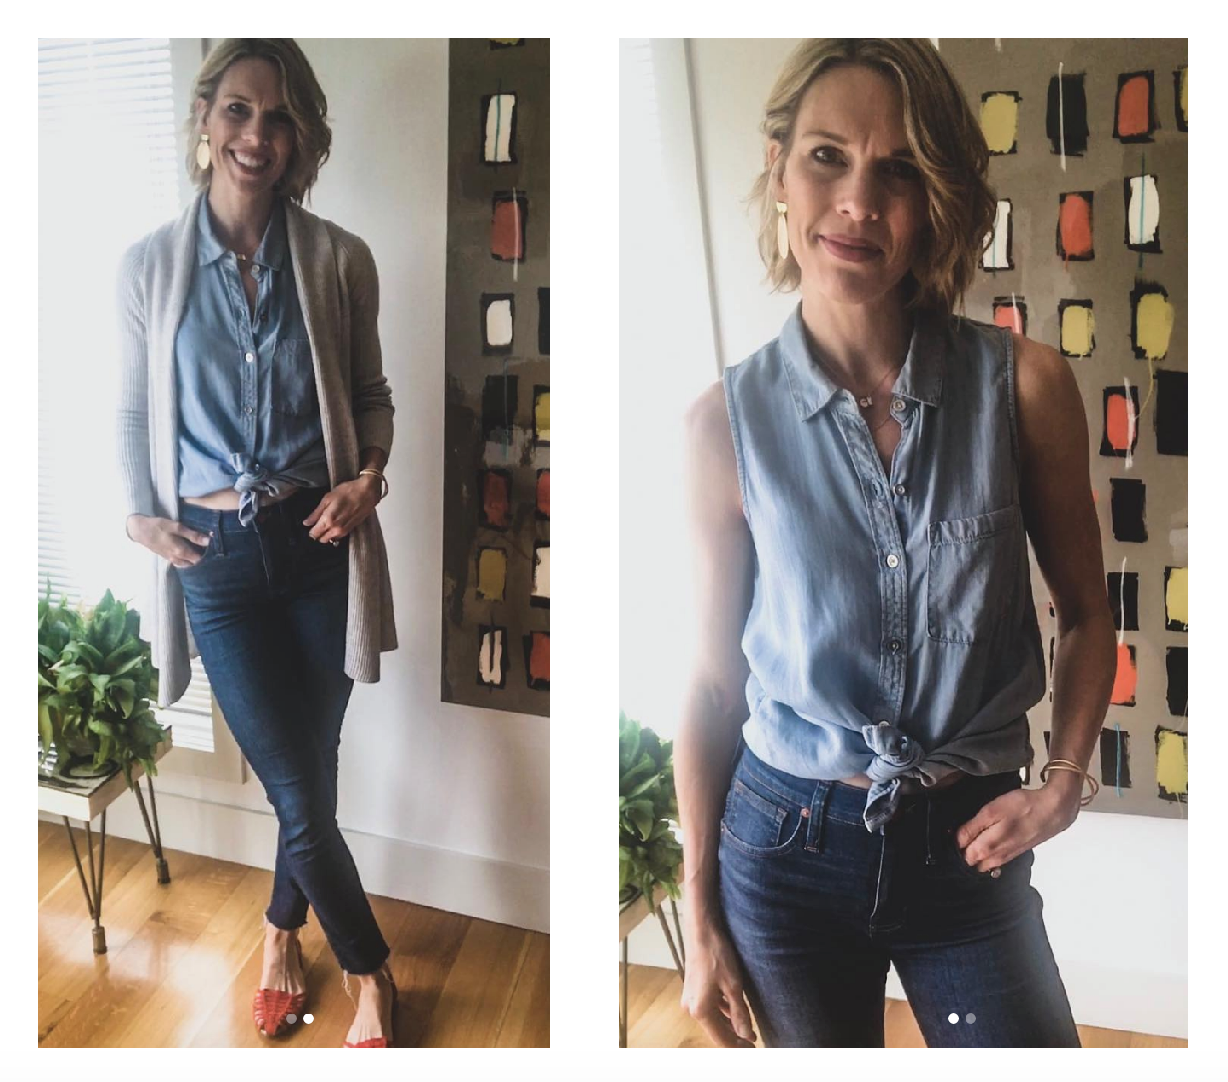 Of all the current spring trends, mix & match denim is 1 of the most fun. Flares, mom jeans or high-rise, plus a denim jacket...our readers have style!